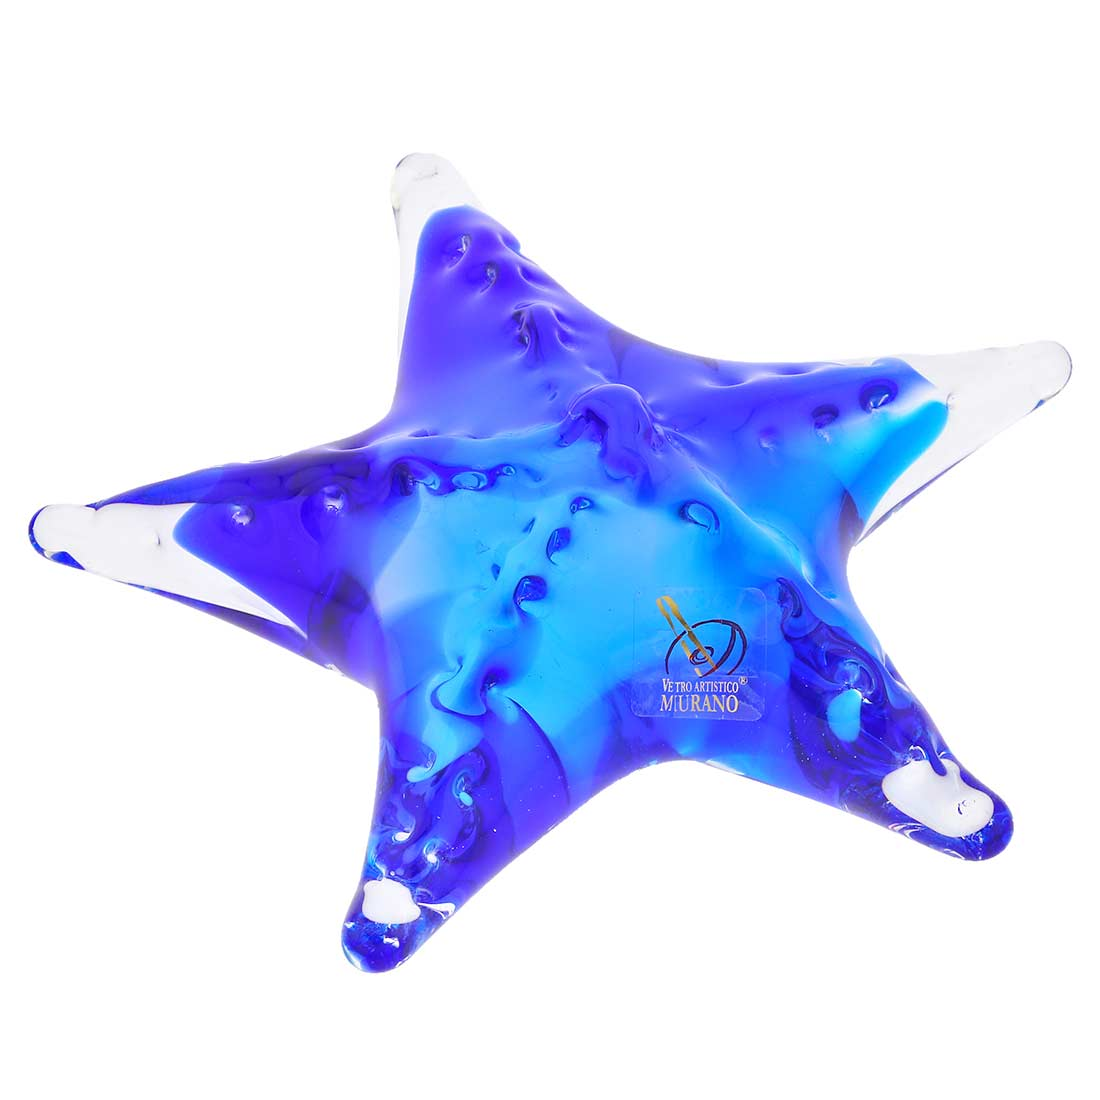 Murano Glass Starfish - Aqua Blue